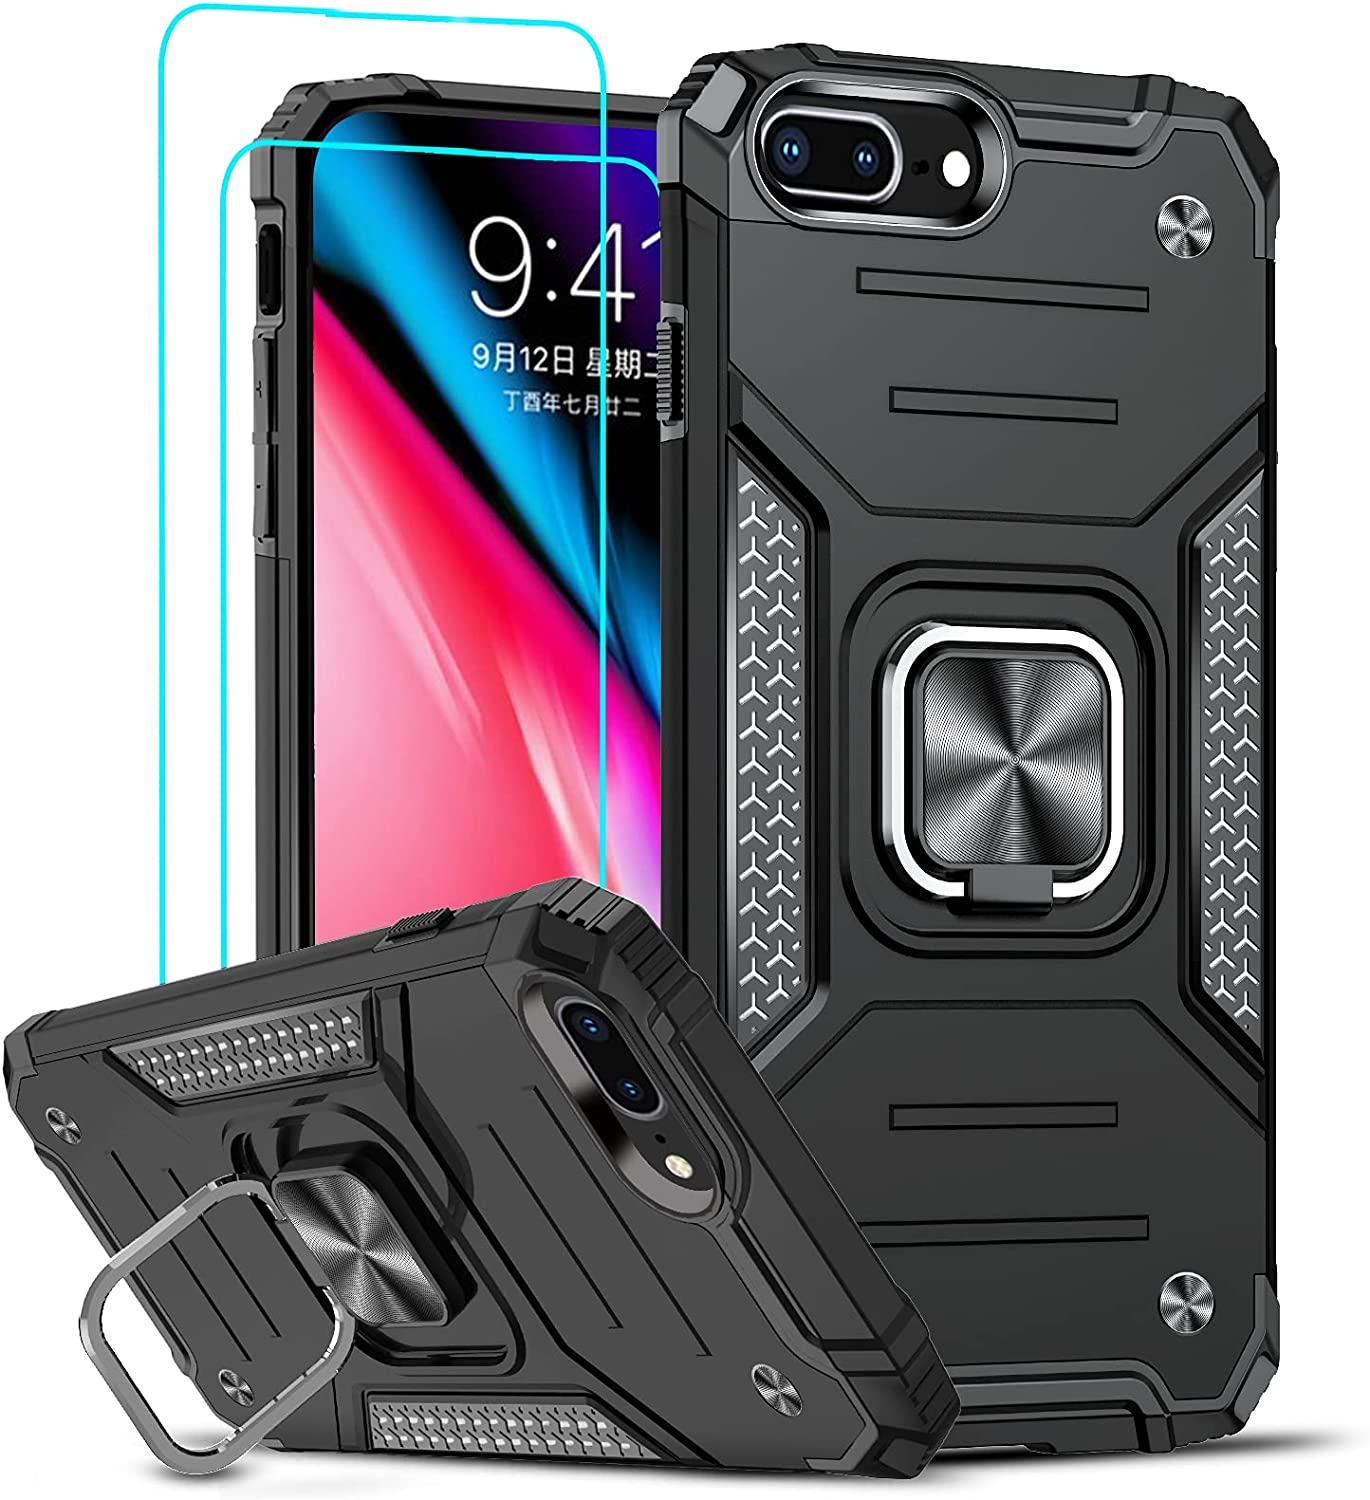 LeYi Compatible with iPhone 8 Plus Case, iPhone 7 Plus Case with 2 Tempered Glass Screen Protector, Shockproof [Military-Grade] Phone Case with Ring Kickstand for iPhone 8 Plus/7 Plus/6s Plus, Black